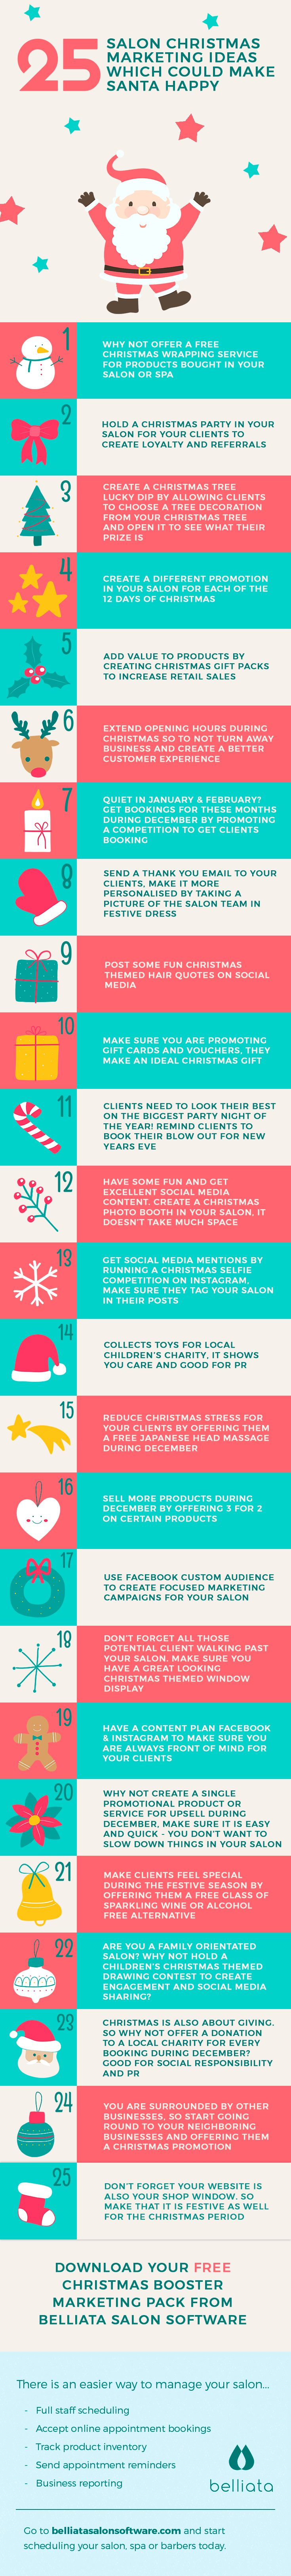 Looking for some great promotion and marketing ideas this Christmas for your salon or spa?  @getbelliata have put together 25 easy ideas to give you inspiration for your business.